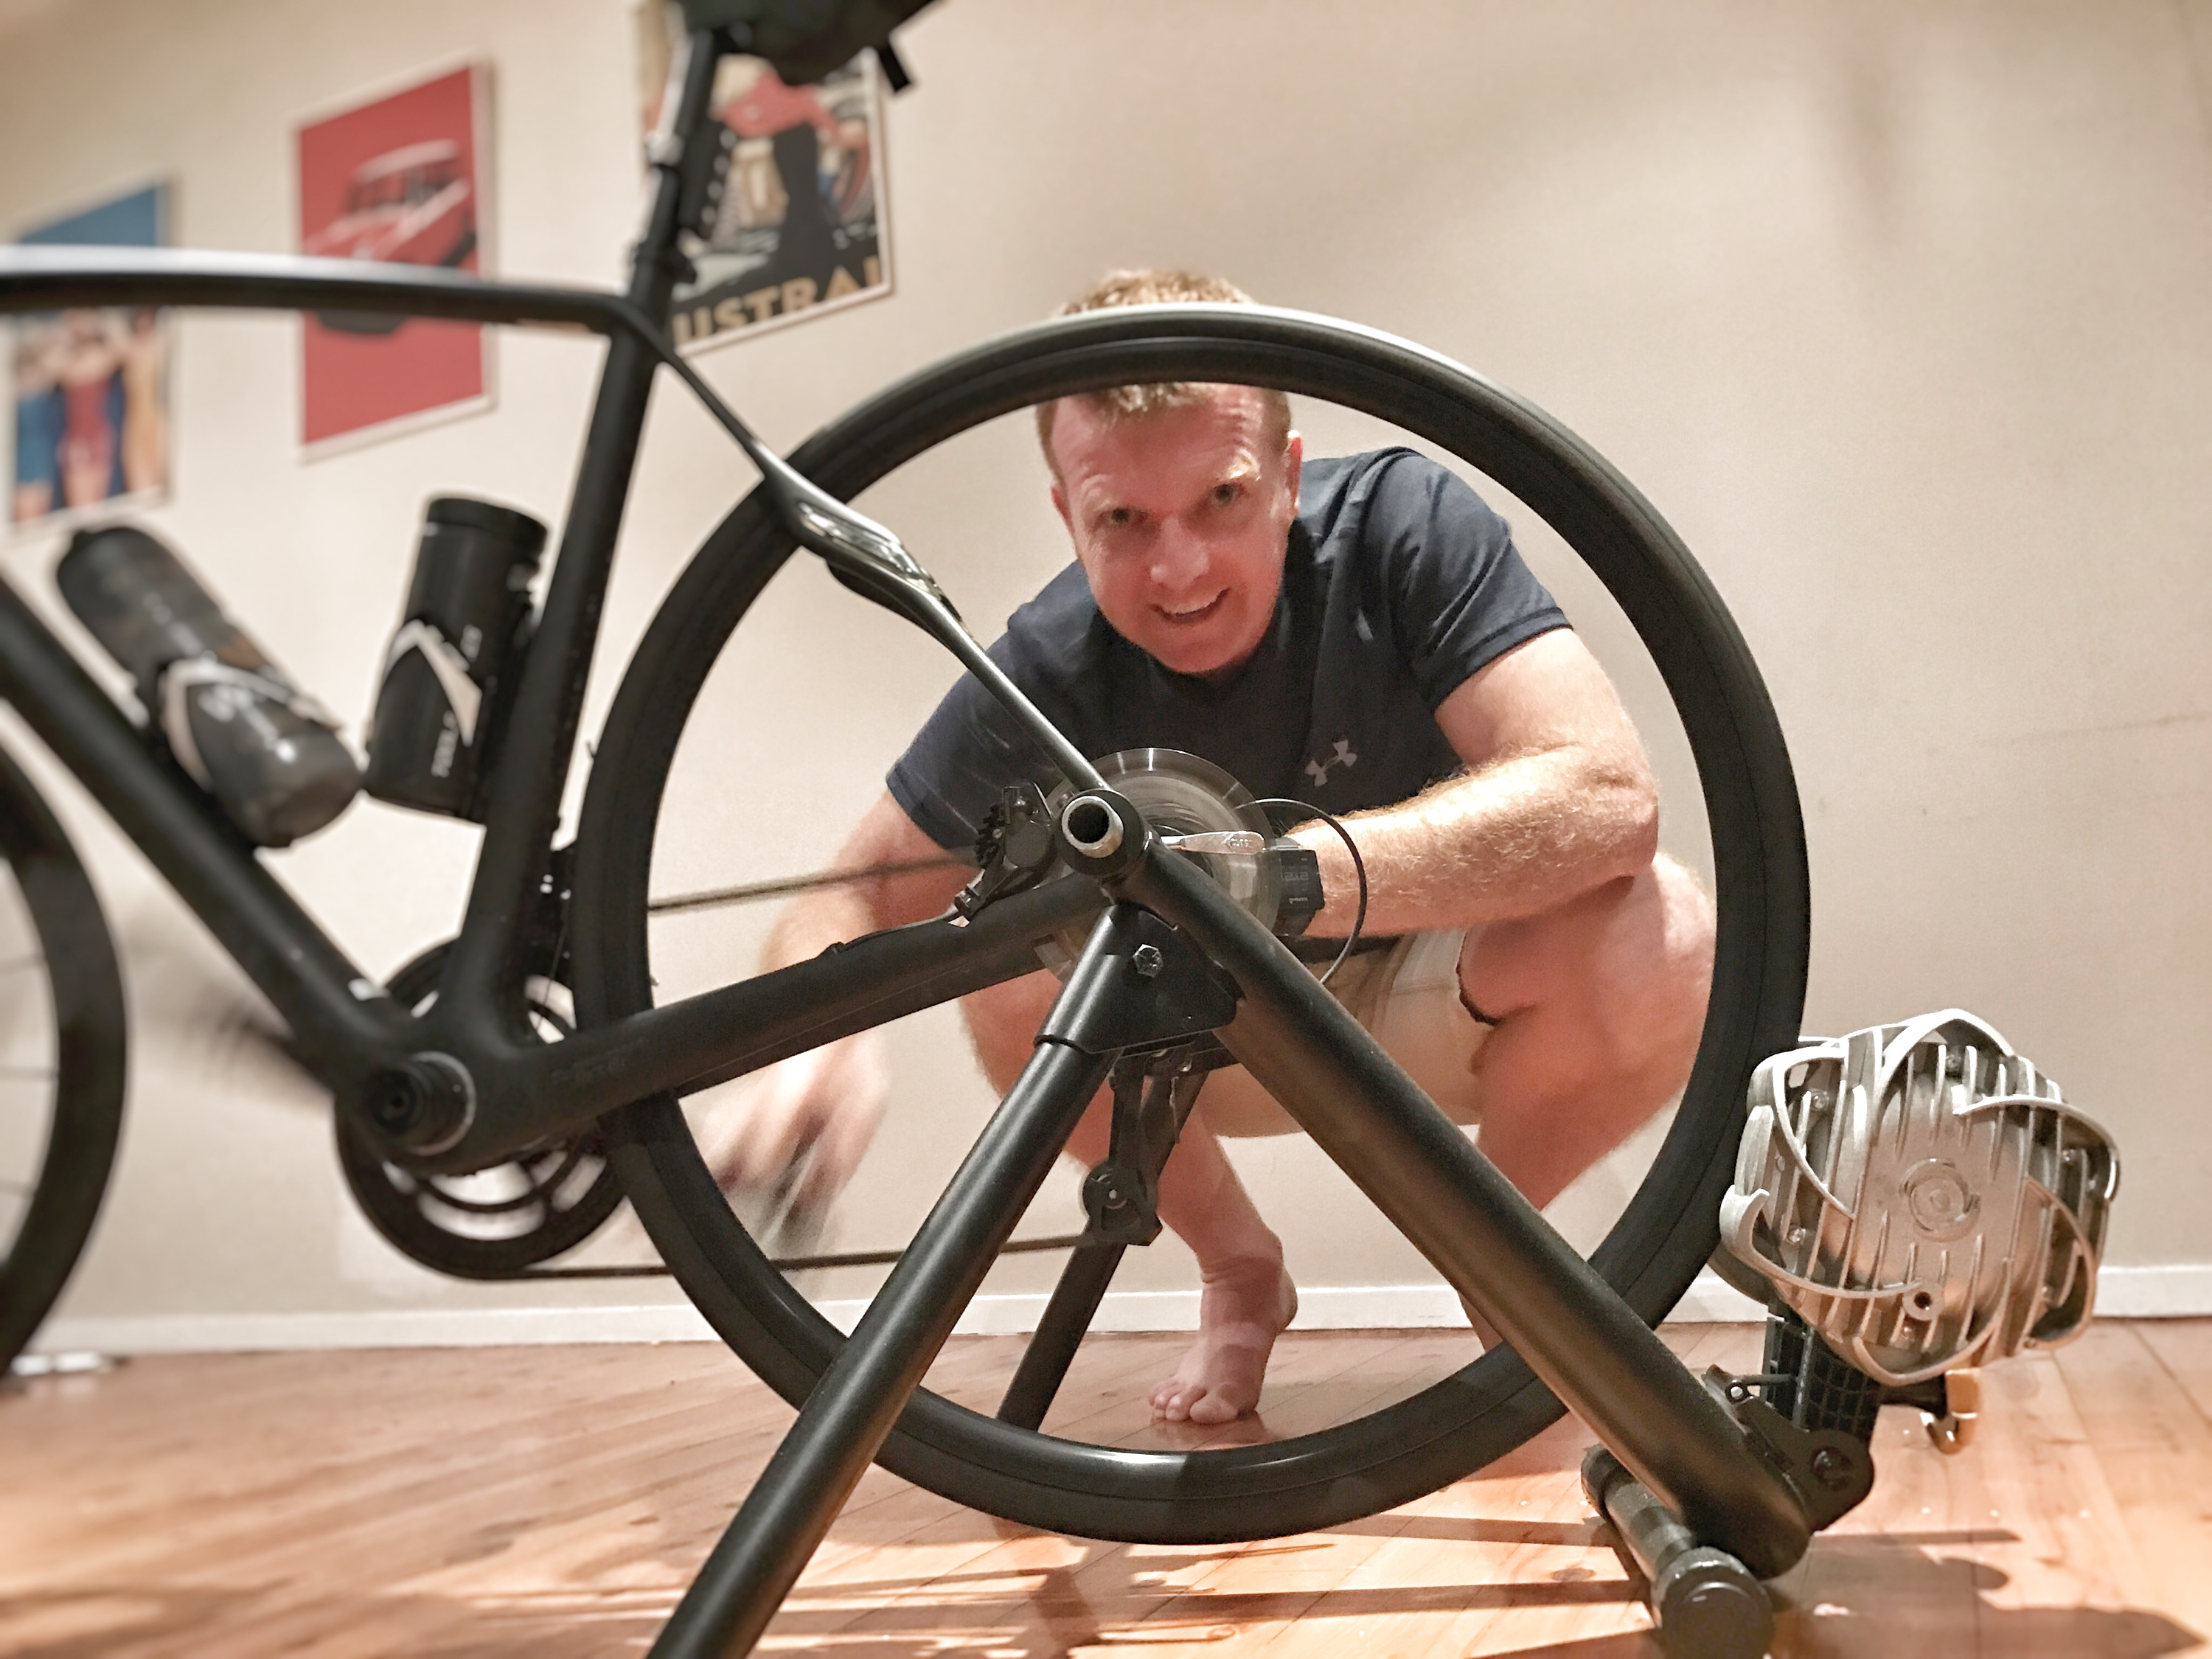 Liam Daley with the bike trainer stand that sparked his delivery idea